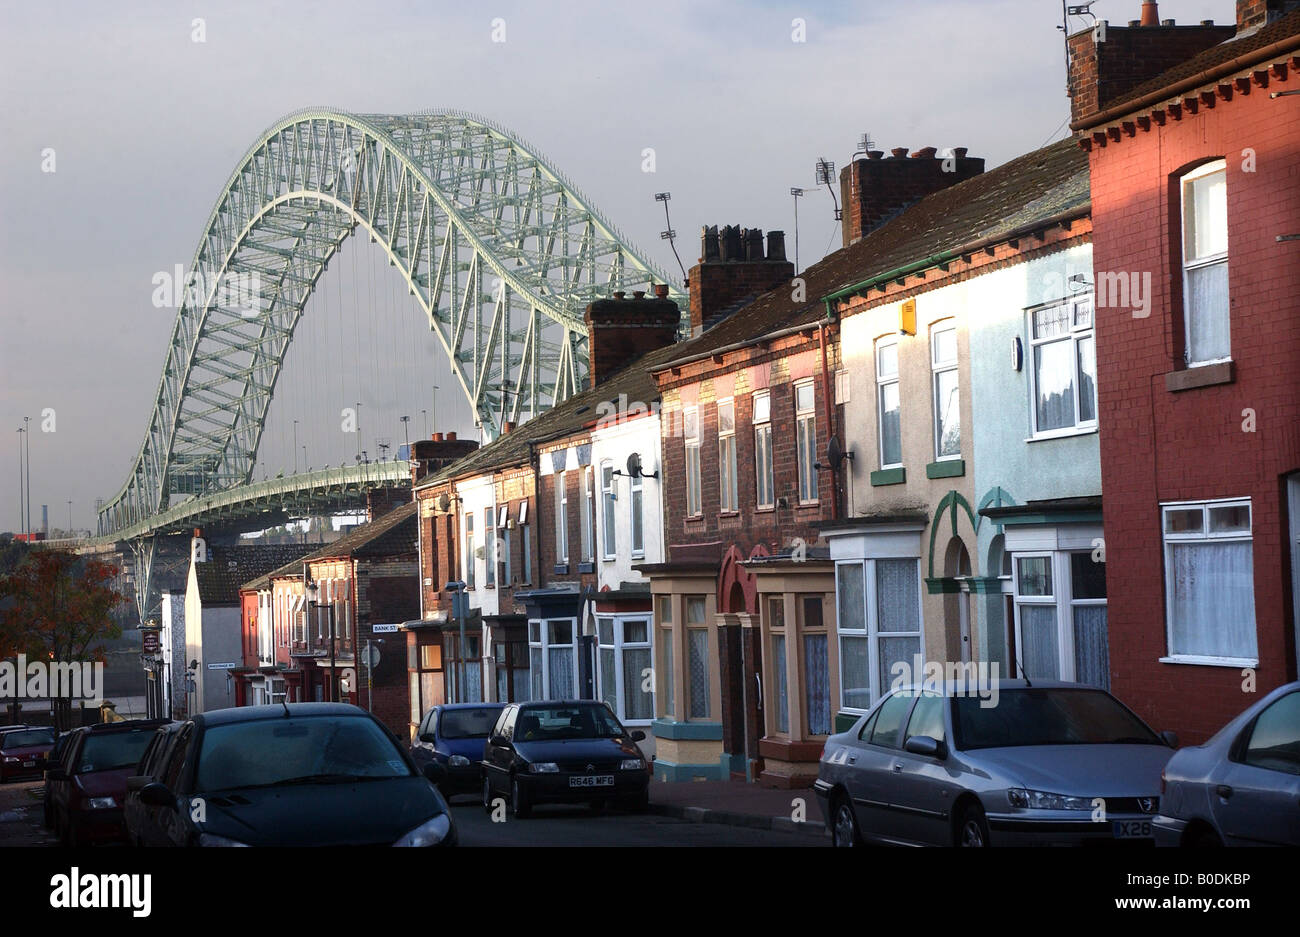 PHOTOGRAPH BY HOWARD BARLOW Terraced PROPERTY on MERSEY ROAD near to WIDNES RUNCORN BRIDGE, Cheshire - Stock Image